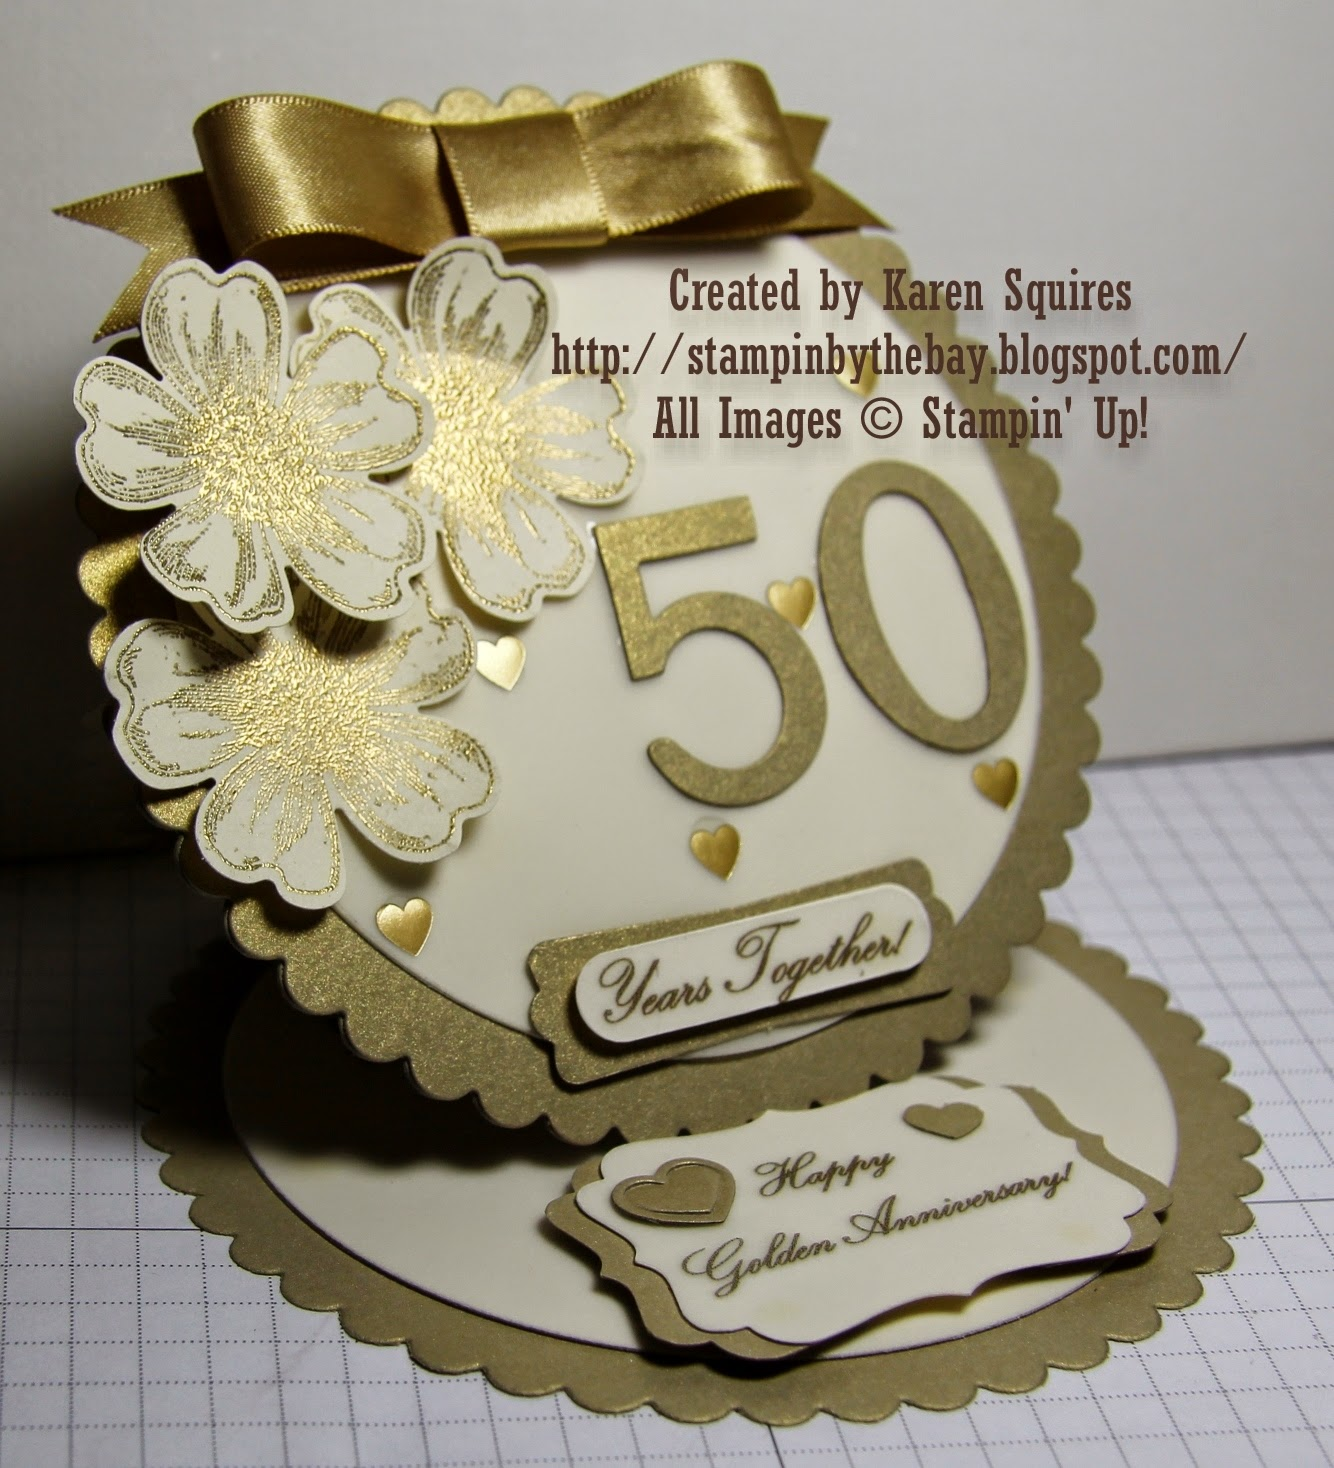 Stampin' By The Bay: Happy 50th Wedding Anniversary Mom & Dad